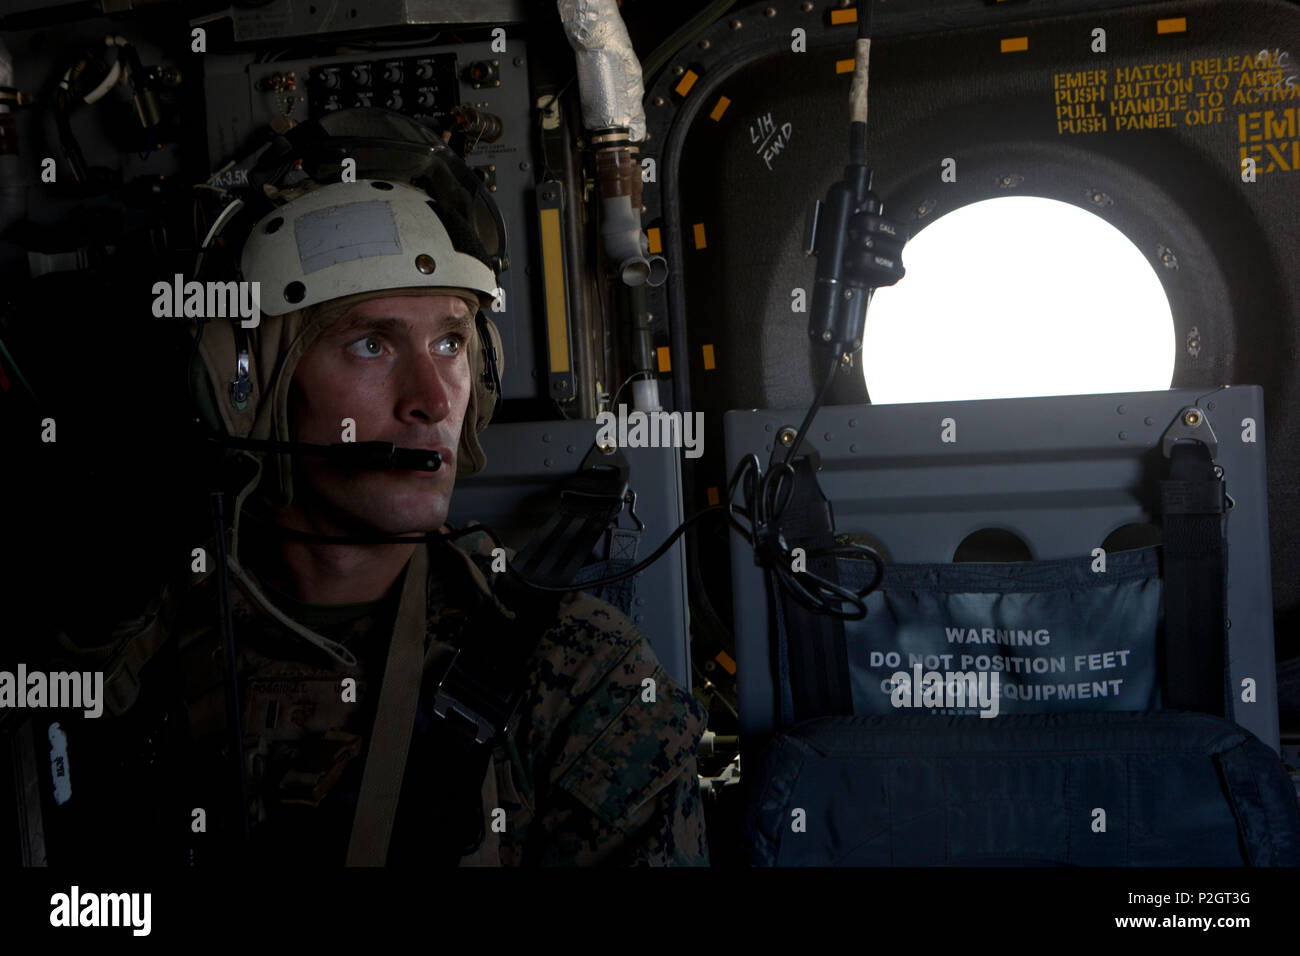 U.S. Marine Corps 2nd Lt. J.T. Poggid attending infantry officers course (IOC) communicates with the pilot during exercise Talon Reach near Yuma, Ariz., Sept. 23, 2016. This evolution provided IOC students exposure to Marine Air Ground Task Force mission planning and execution through the conduct of a long-range, non-combatant, evacuation exercise that extended to both the Combat Center at 29 Palms, Calf. and Marine Corps Air Station Yuma, Ariz. IOC students coordinated with Marine Aviation Weapons and Tactics Squadron One instructors to conduct the command operations center activities, test c - Stock Image